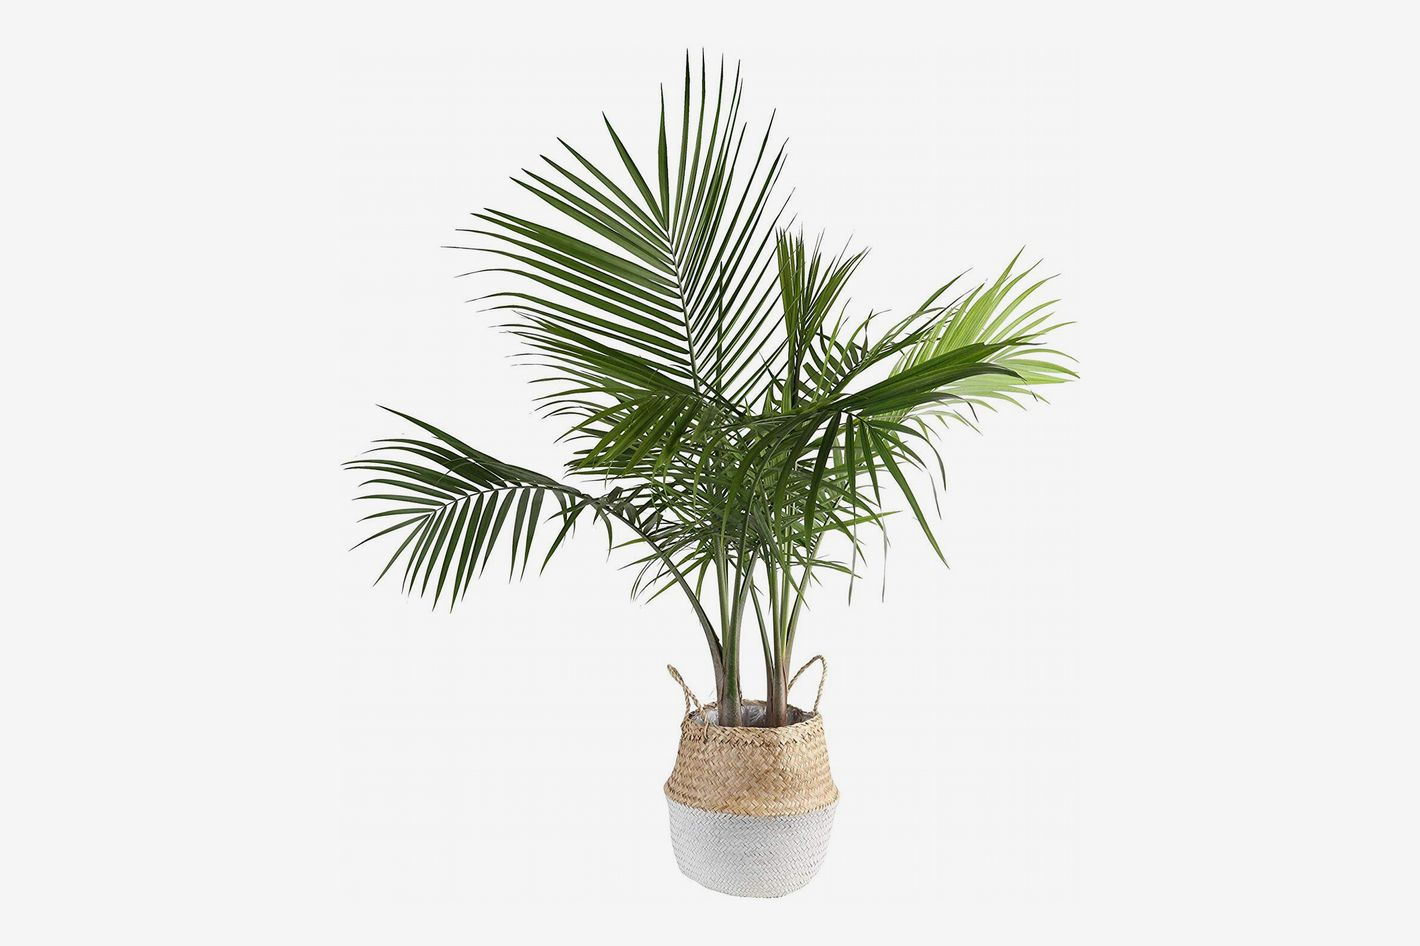 Costa Farms Majesty Indoor Palm Tree in Seagrass Basket, 3-Feet Tall